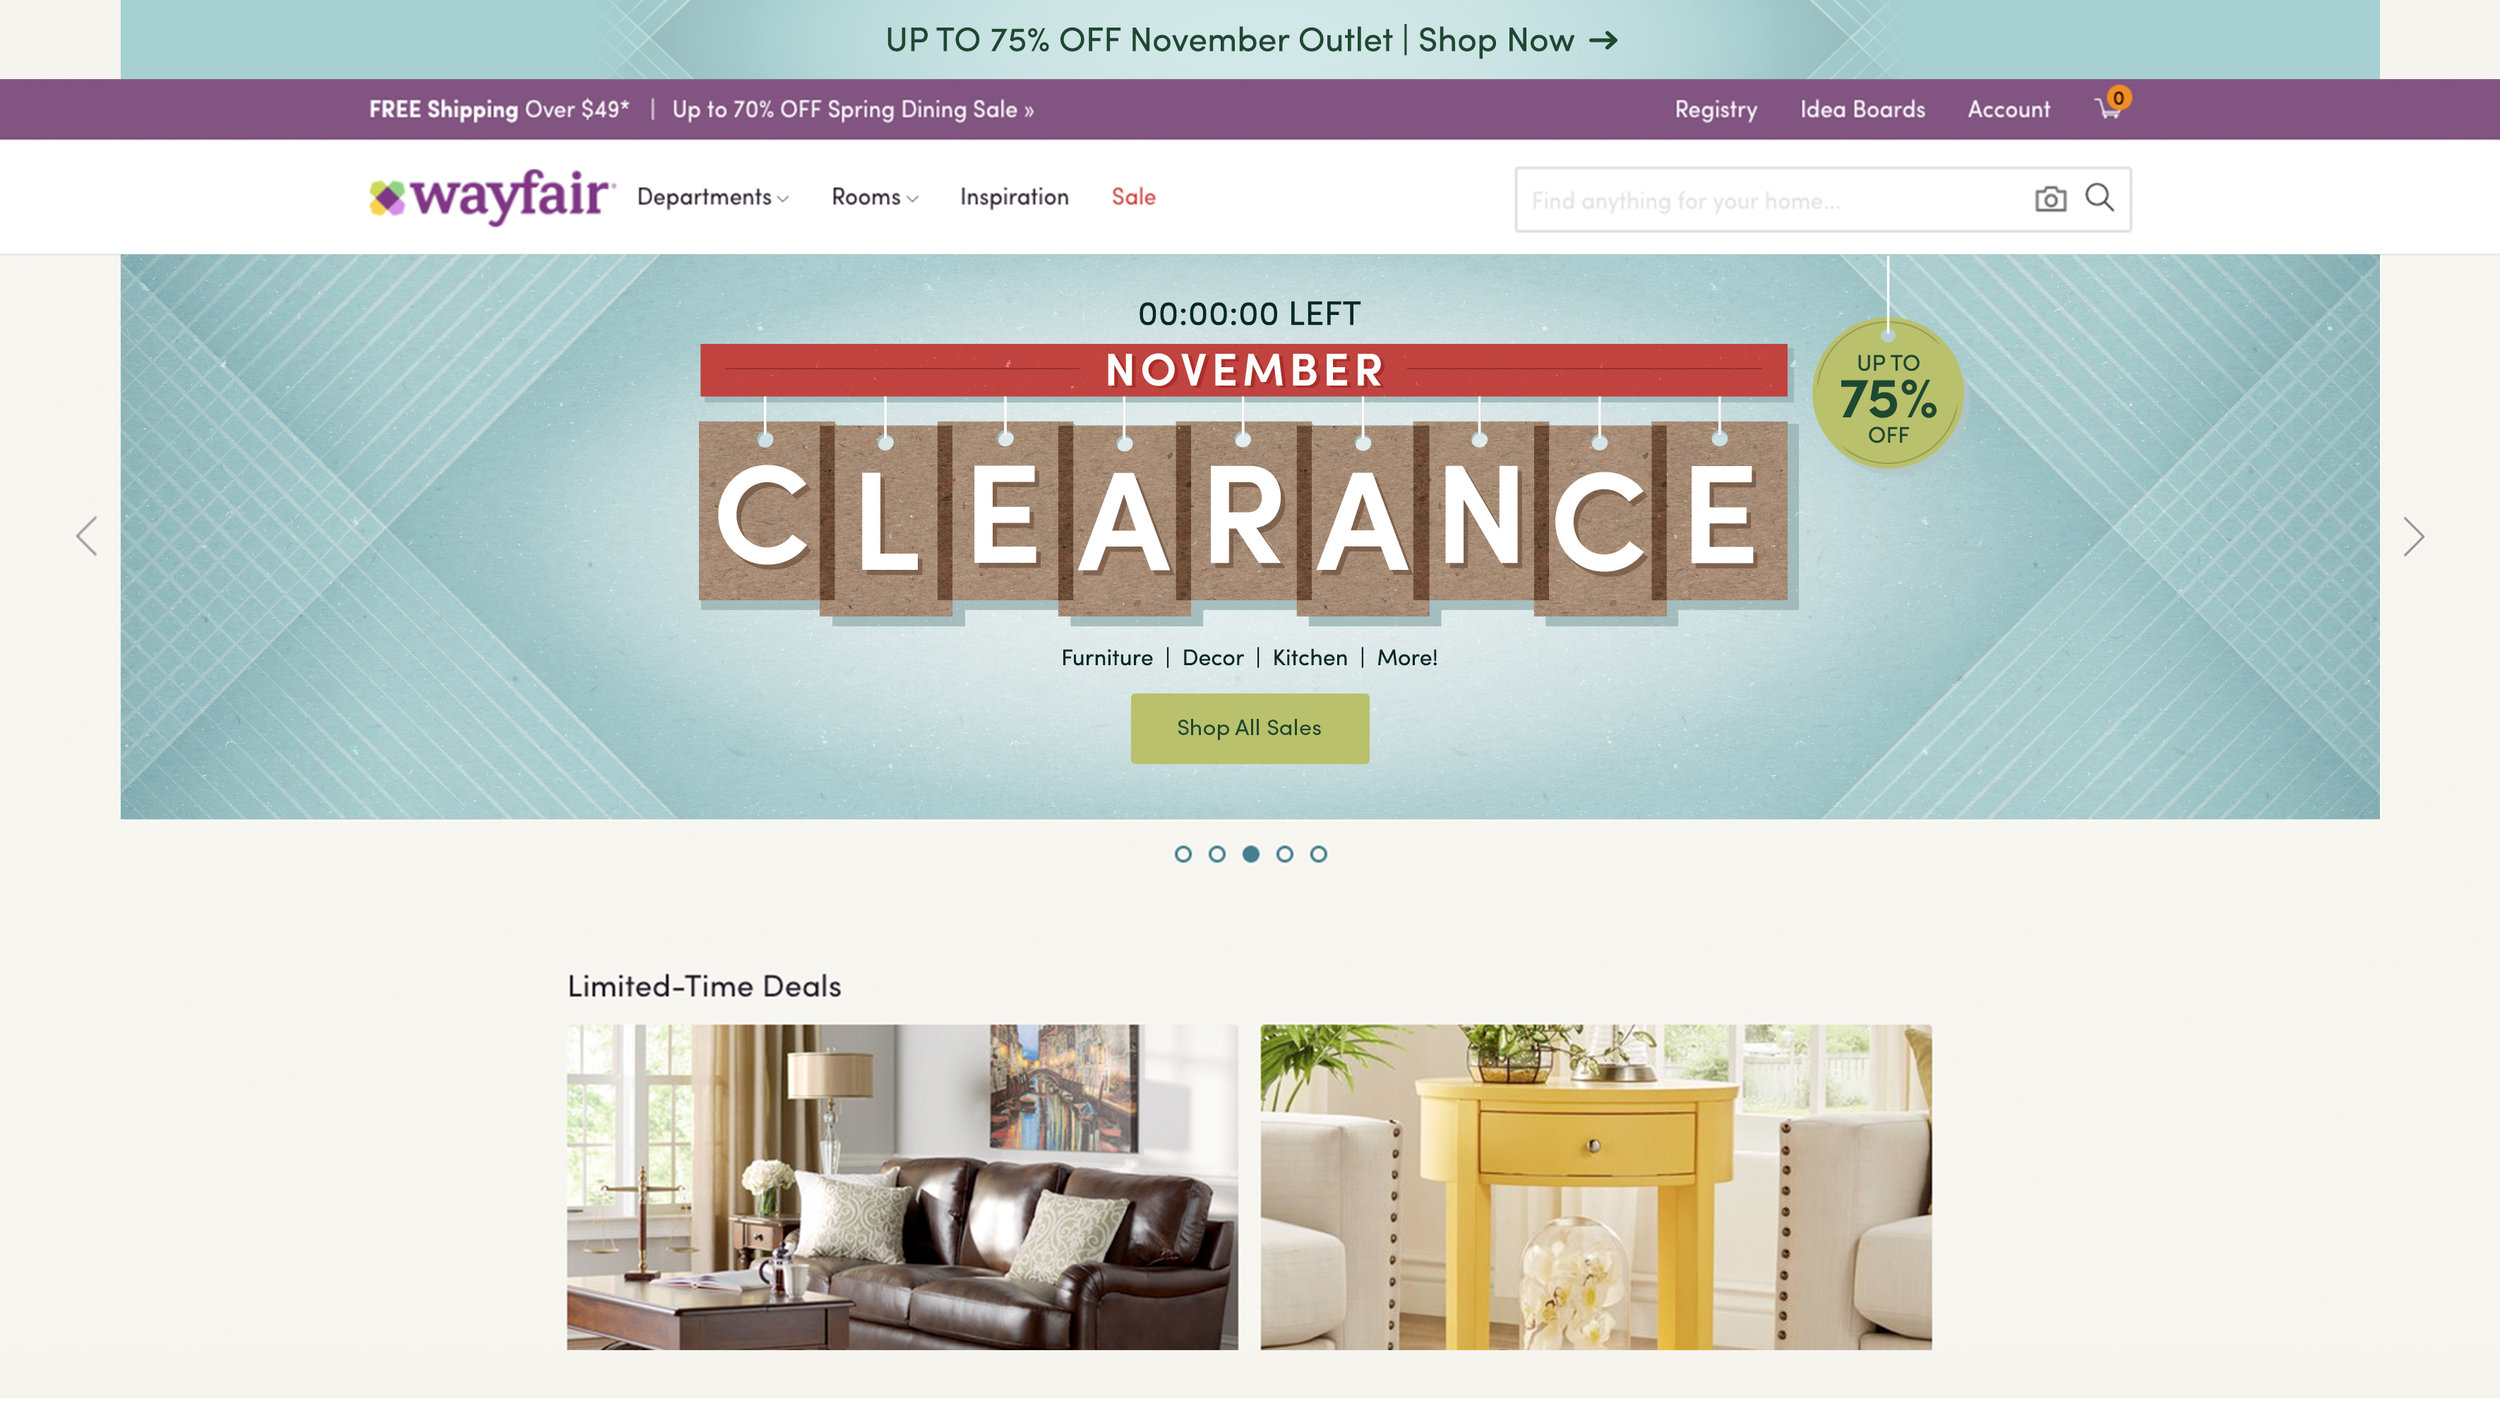 November Clearance Major Promotion